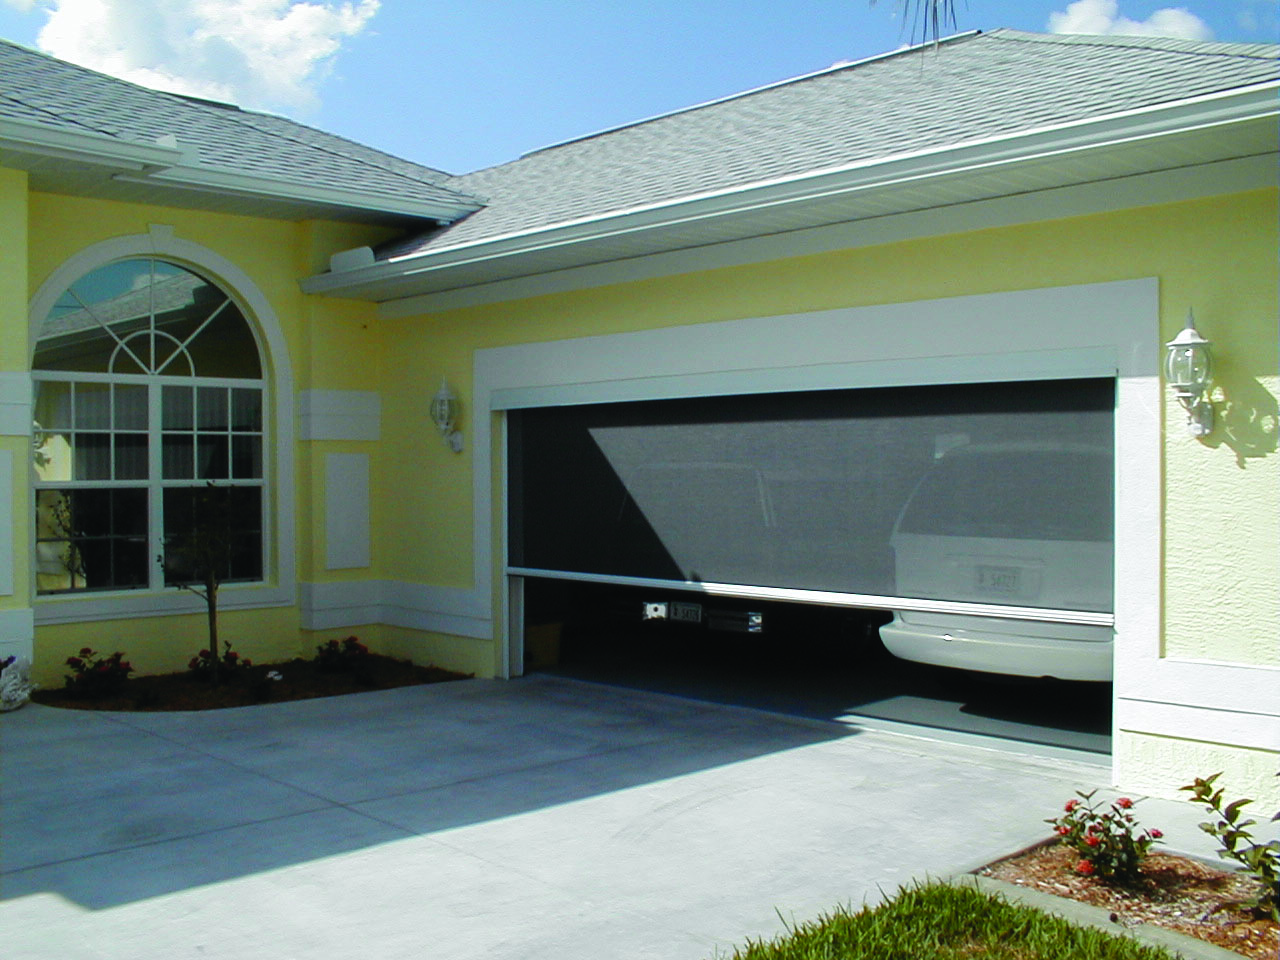 Garage door screen worcester door company for Roll down garage door screen